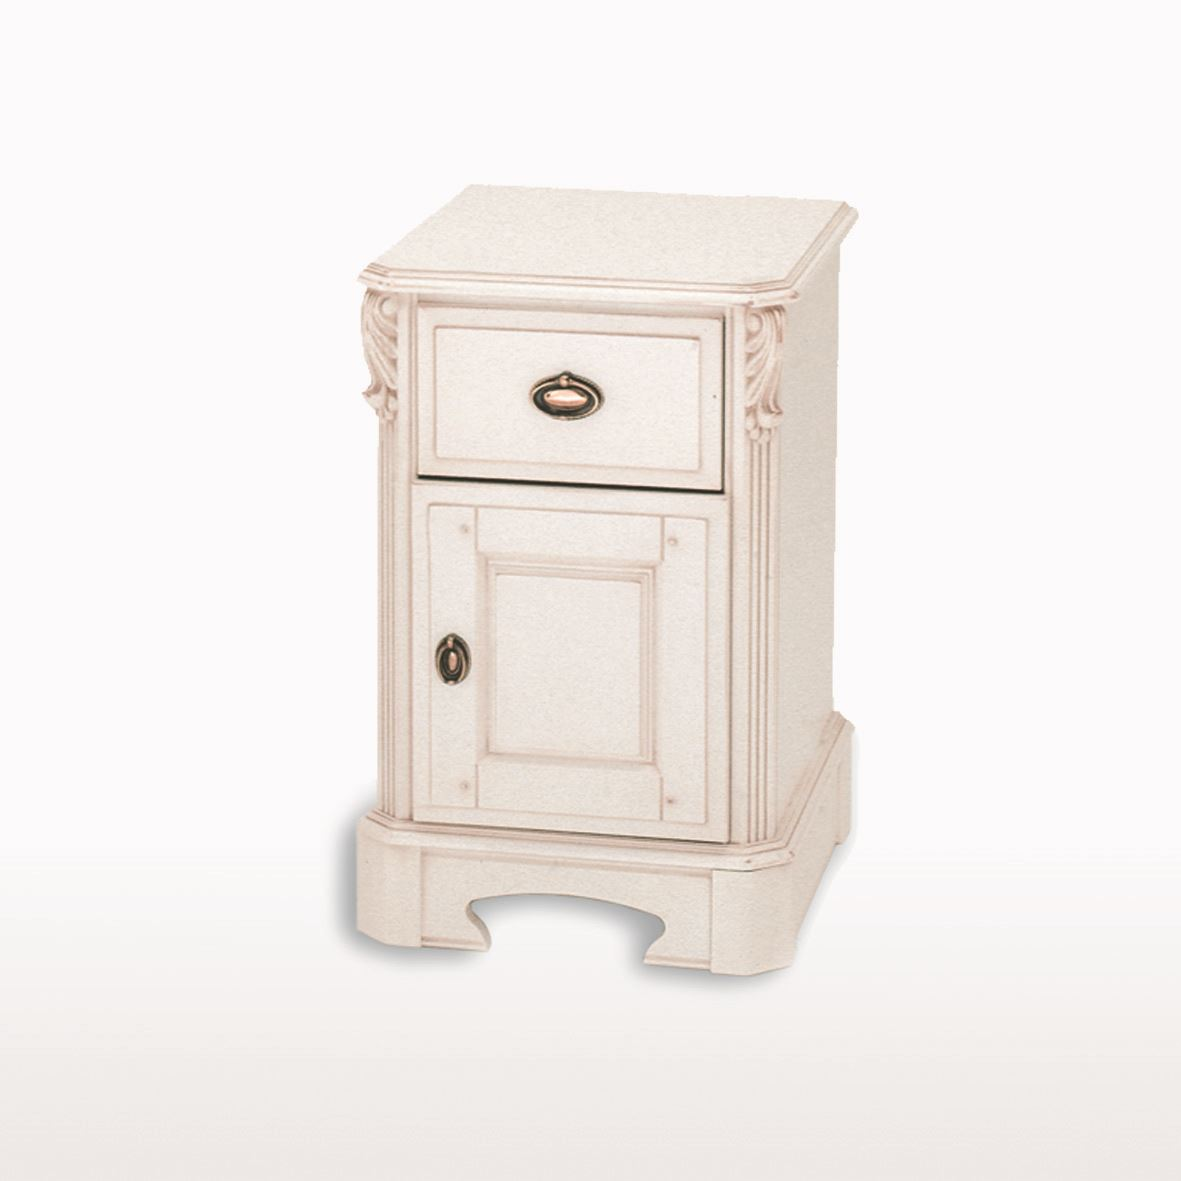 Amore' - Small 1 Drawer / 1 Door Bedside Cabinet ABJ211 L/R